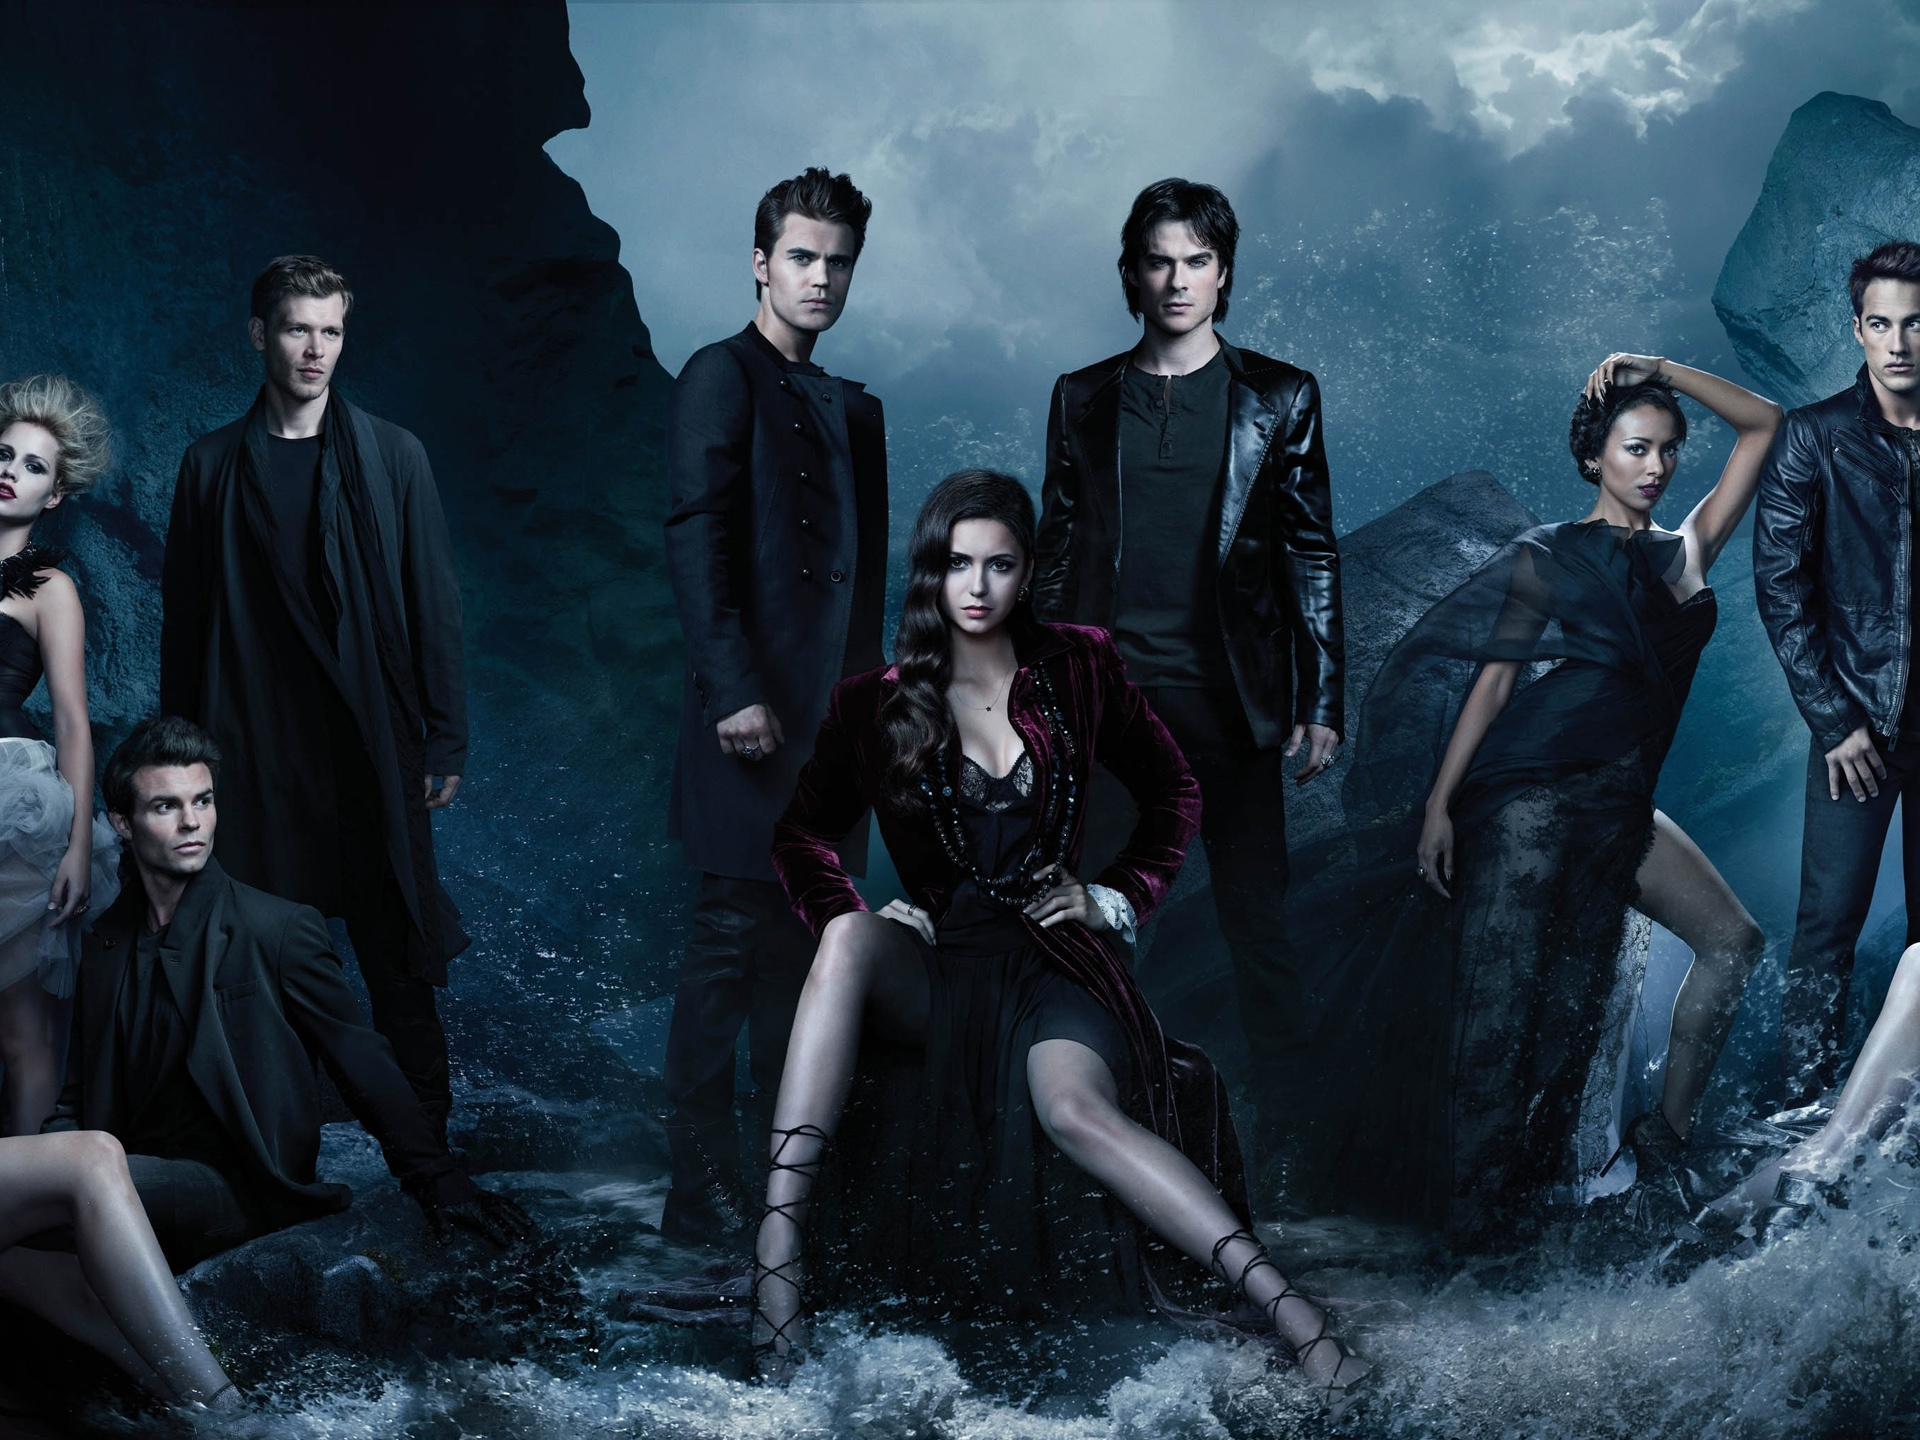 Fondos De Pantalla The Vampire Diaries Series De Tv